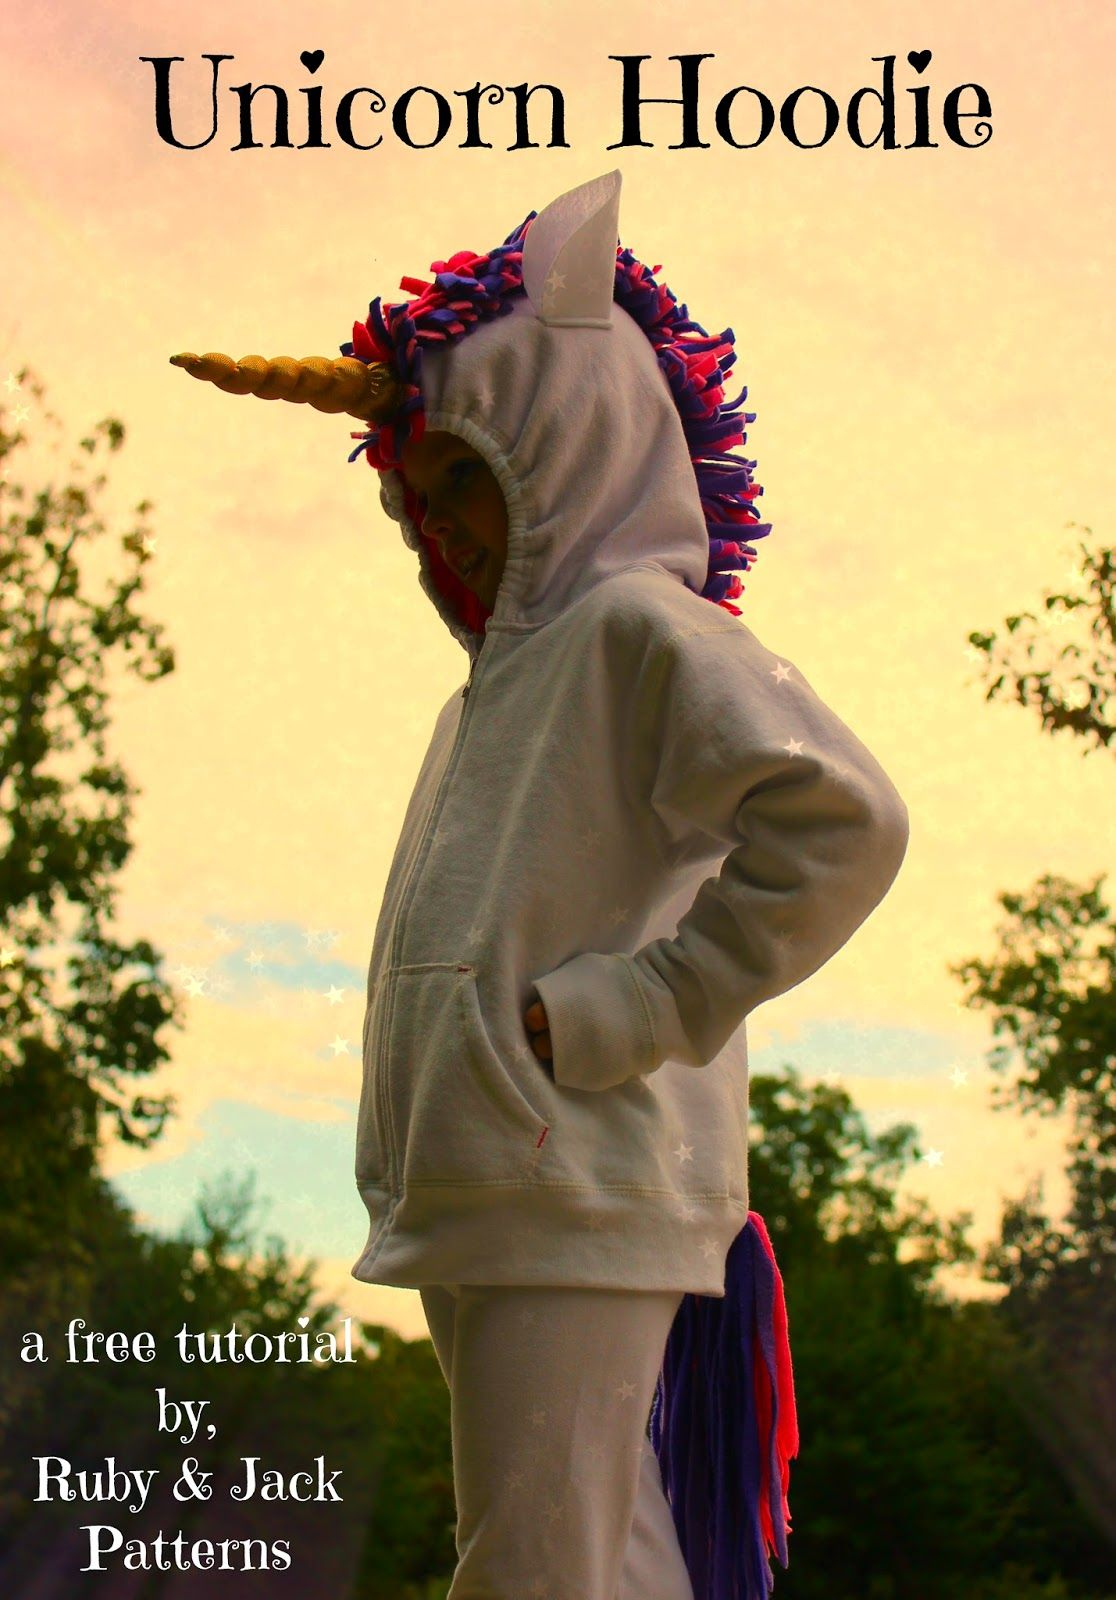 How to Make a Unicorn Horn Hoodie from Ruby & Jack Patterns